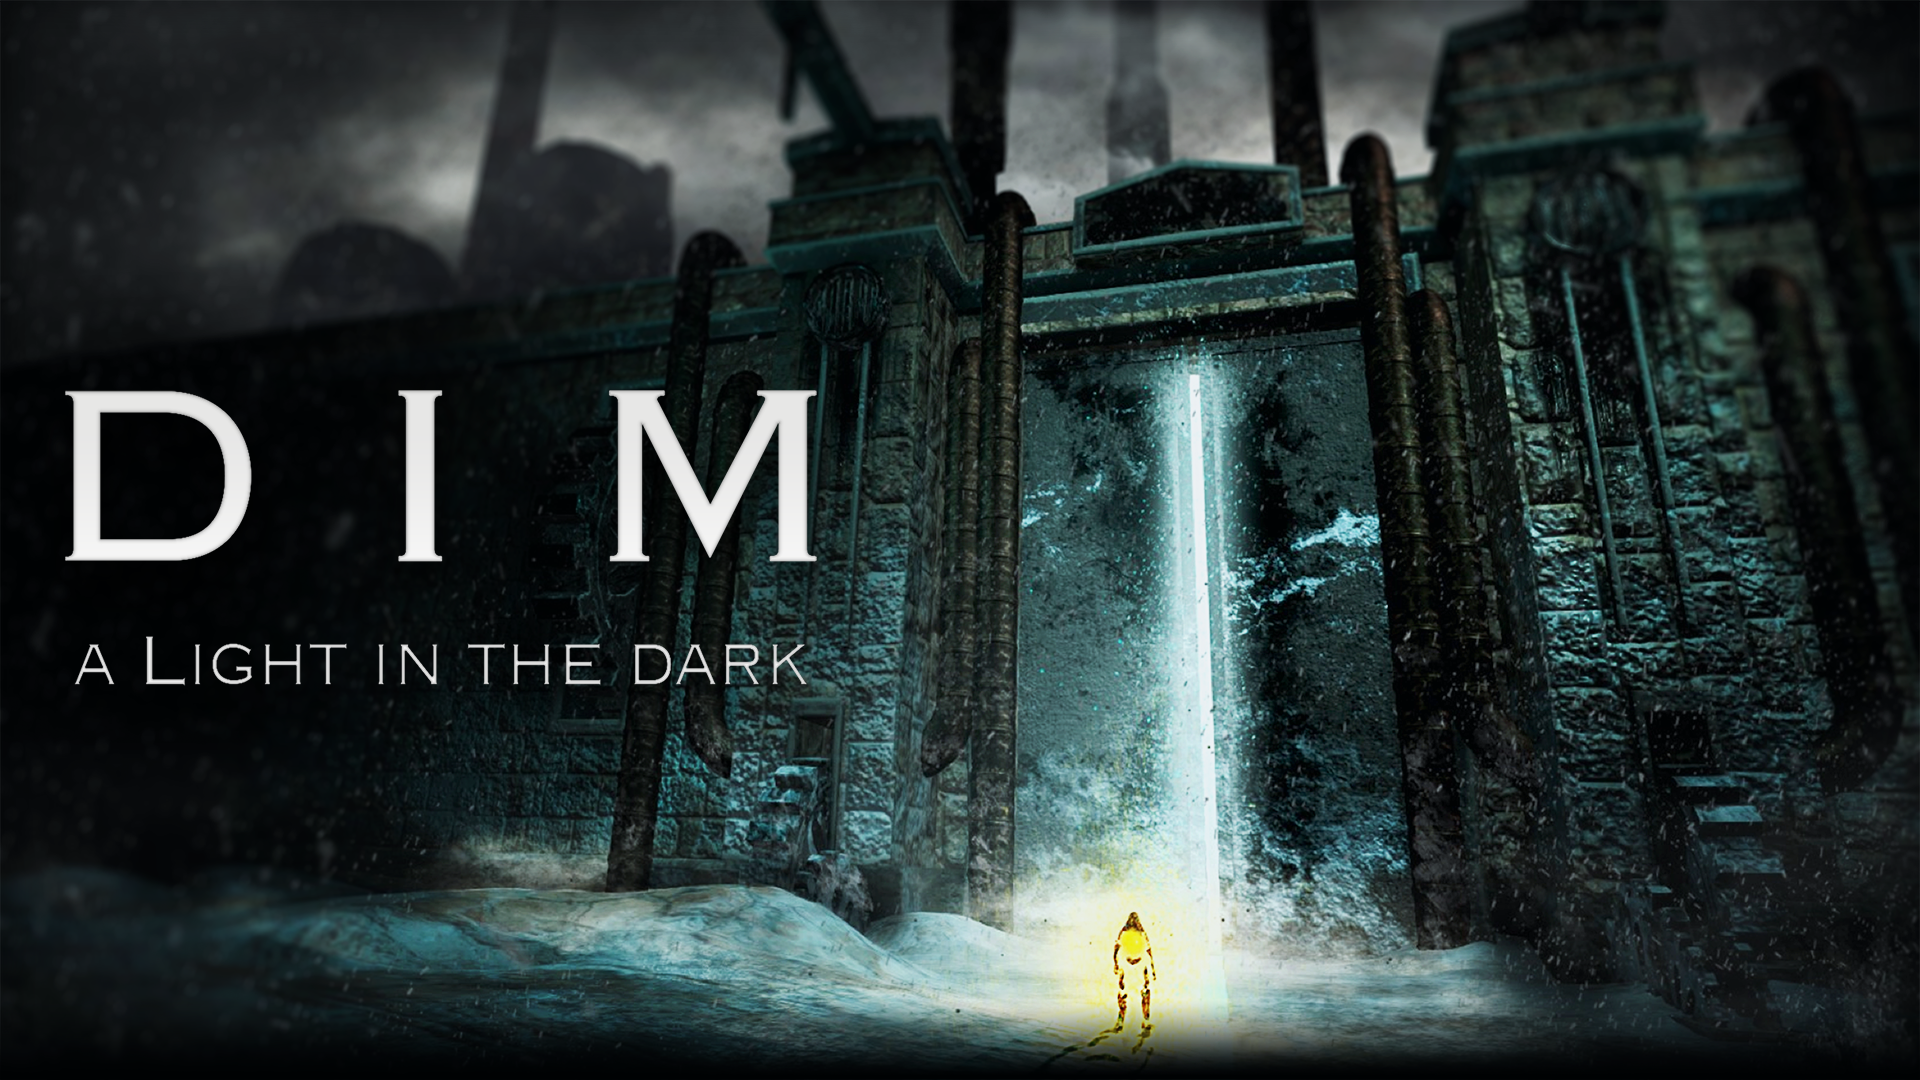 Dim: A Light In The Dark